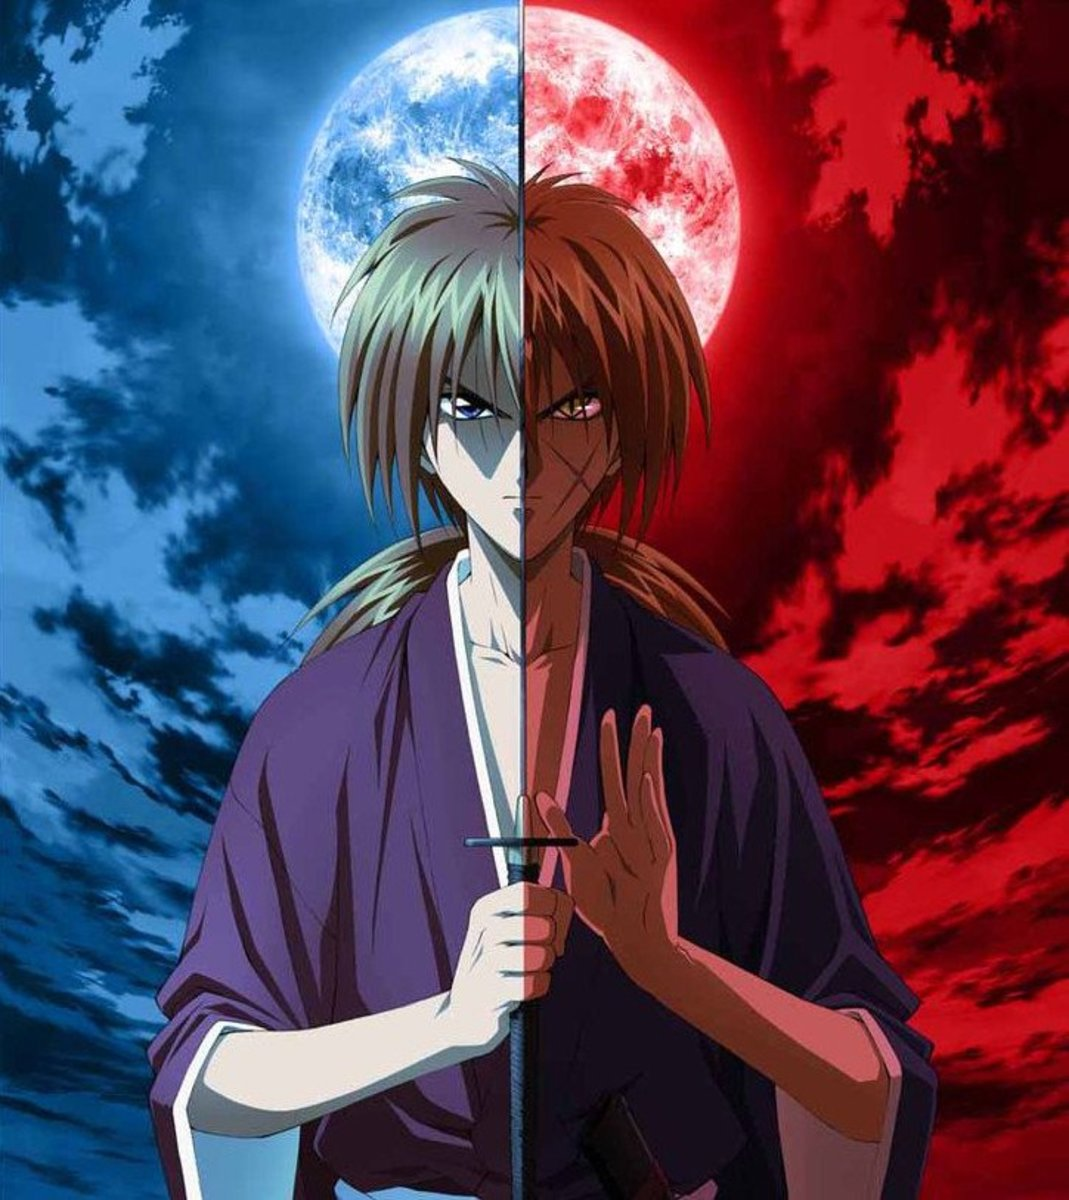 Top 5 Strongest Swordsmen in Rurouni Kenshin